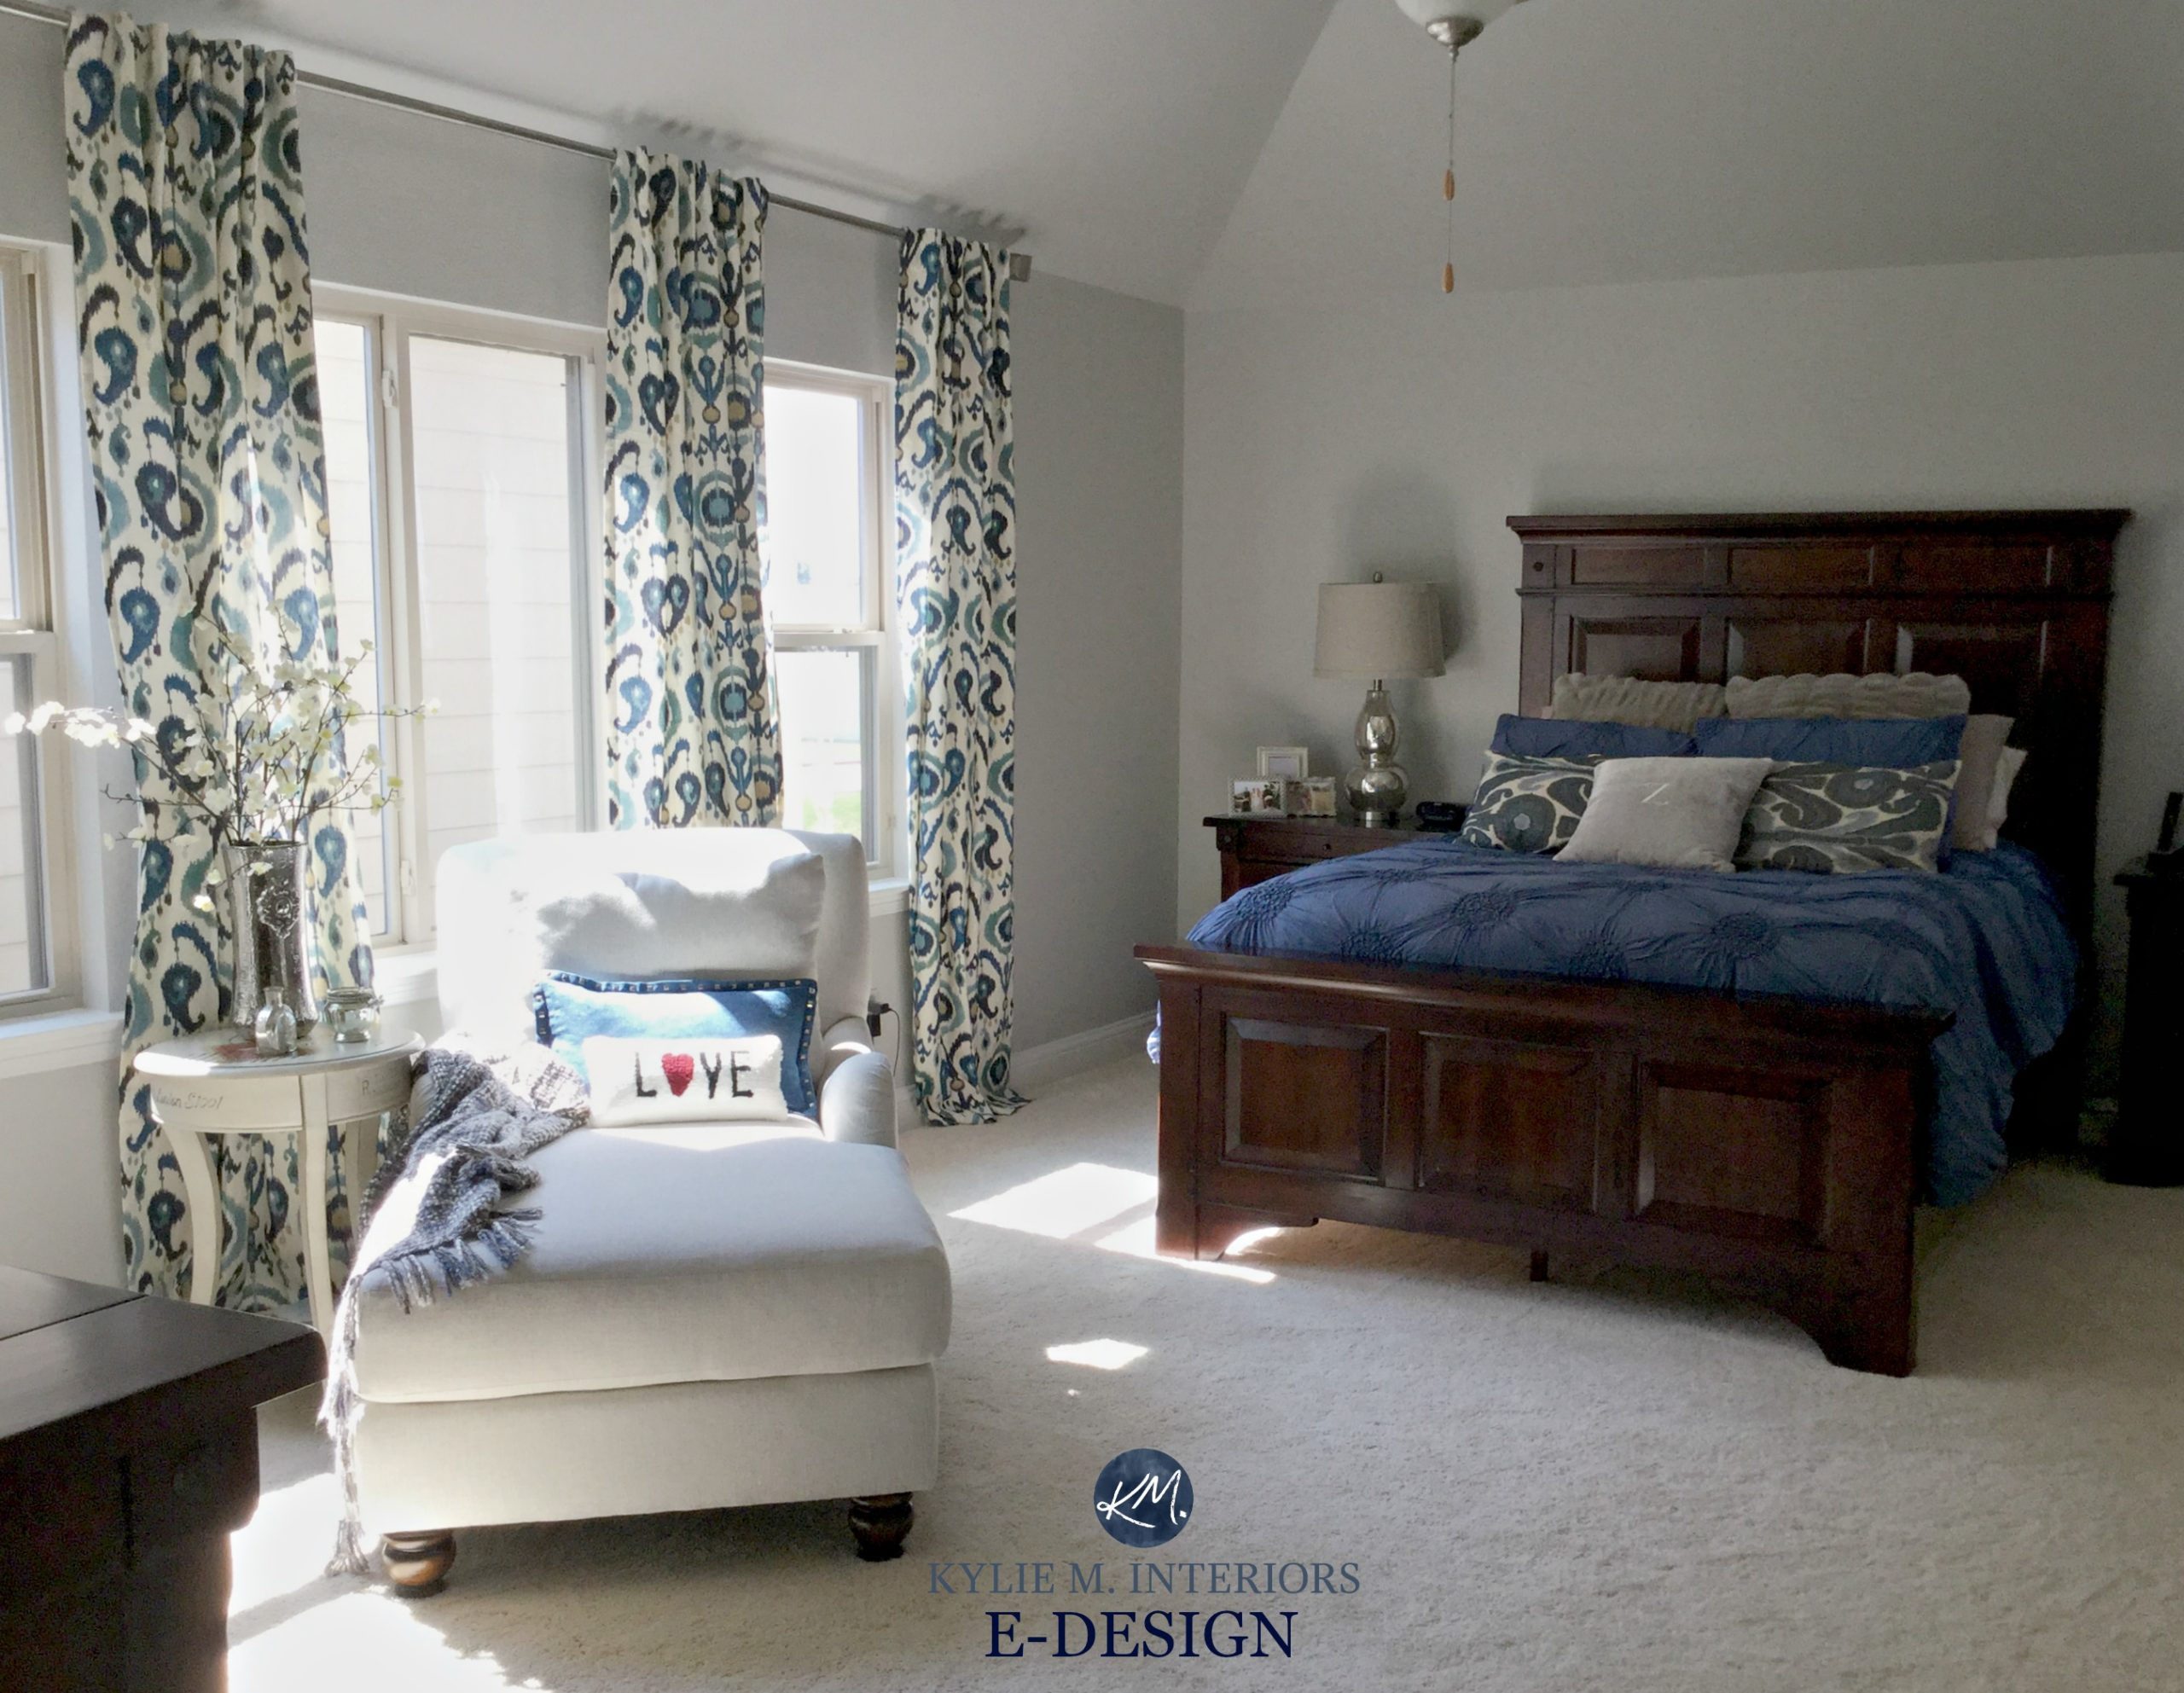 Repose Gray Master Bedroom Sherwin Williams Repose Gray, master bedroom with dark cherry wood  furniture, navy blue, white and red accents. Kylie M E-design and online  color consulting ...